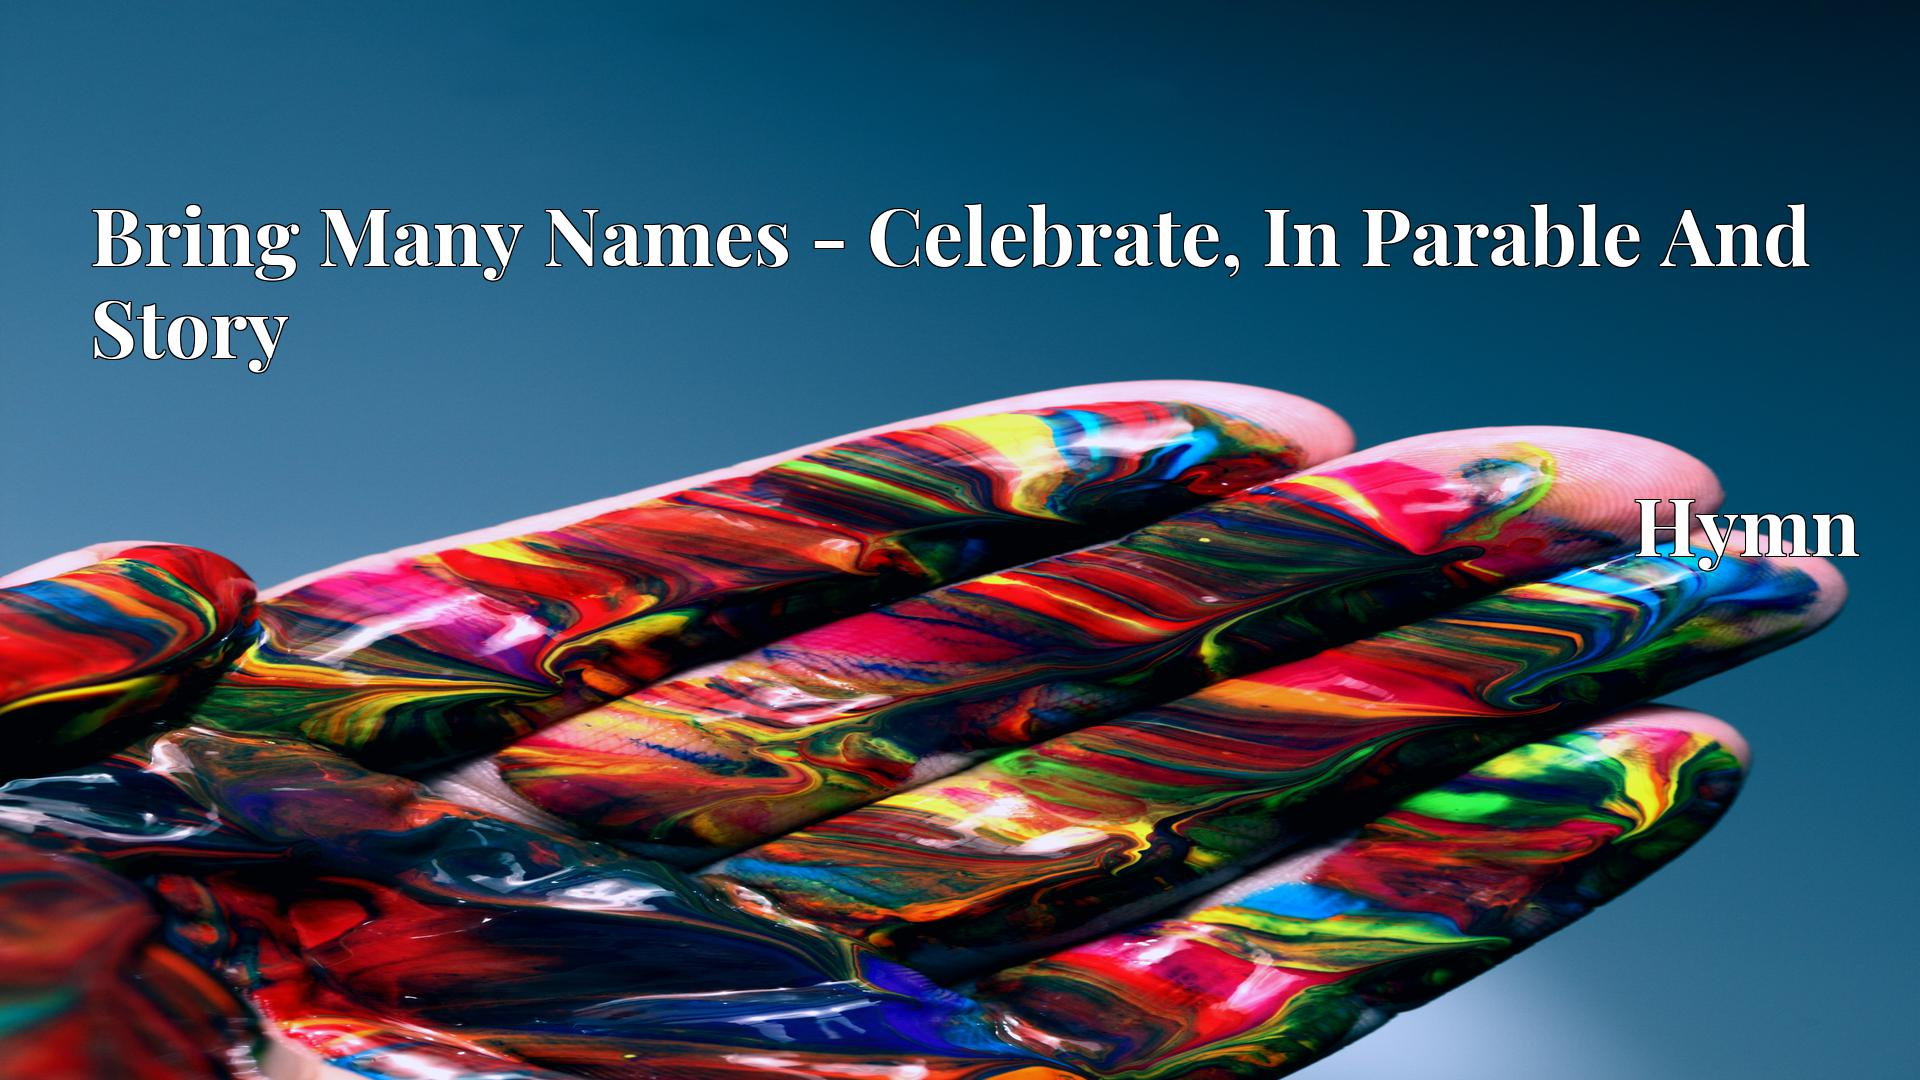 Bring Many Names - Celebrate, In Parable And Story Hymn